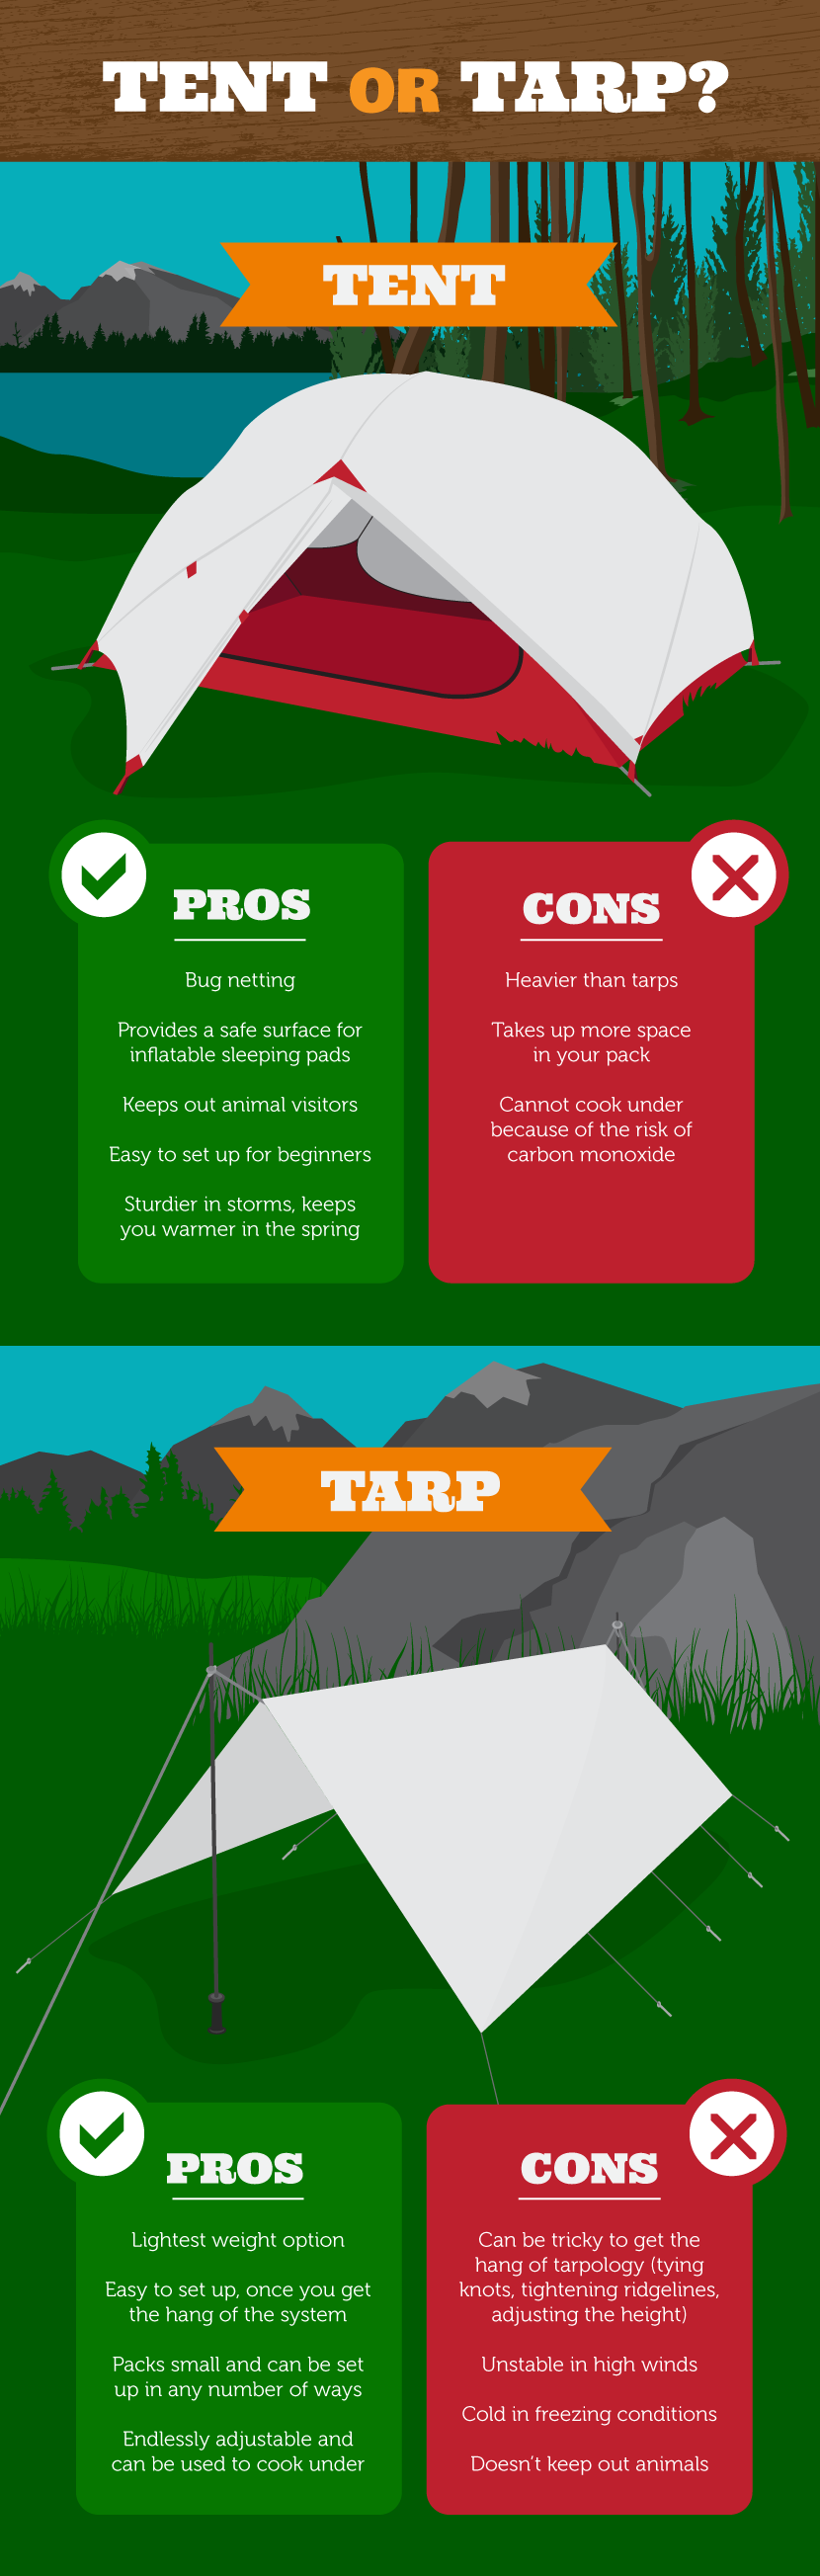 Tent or Tarp - How to Plan For a Thru-Hike